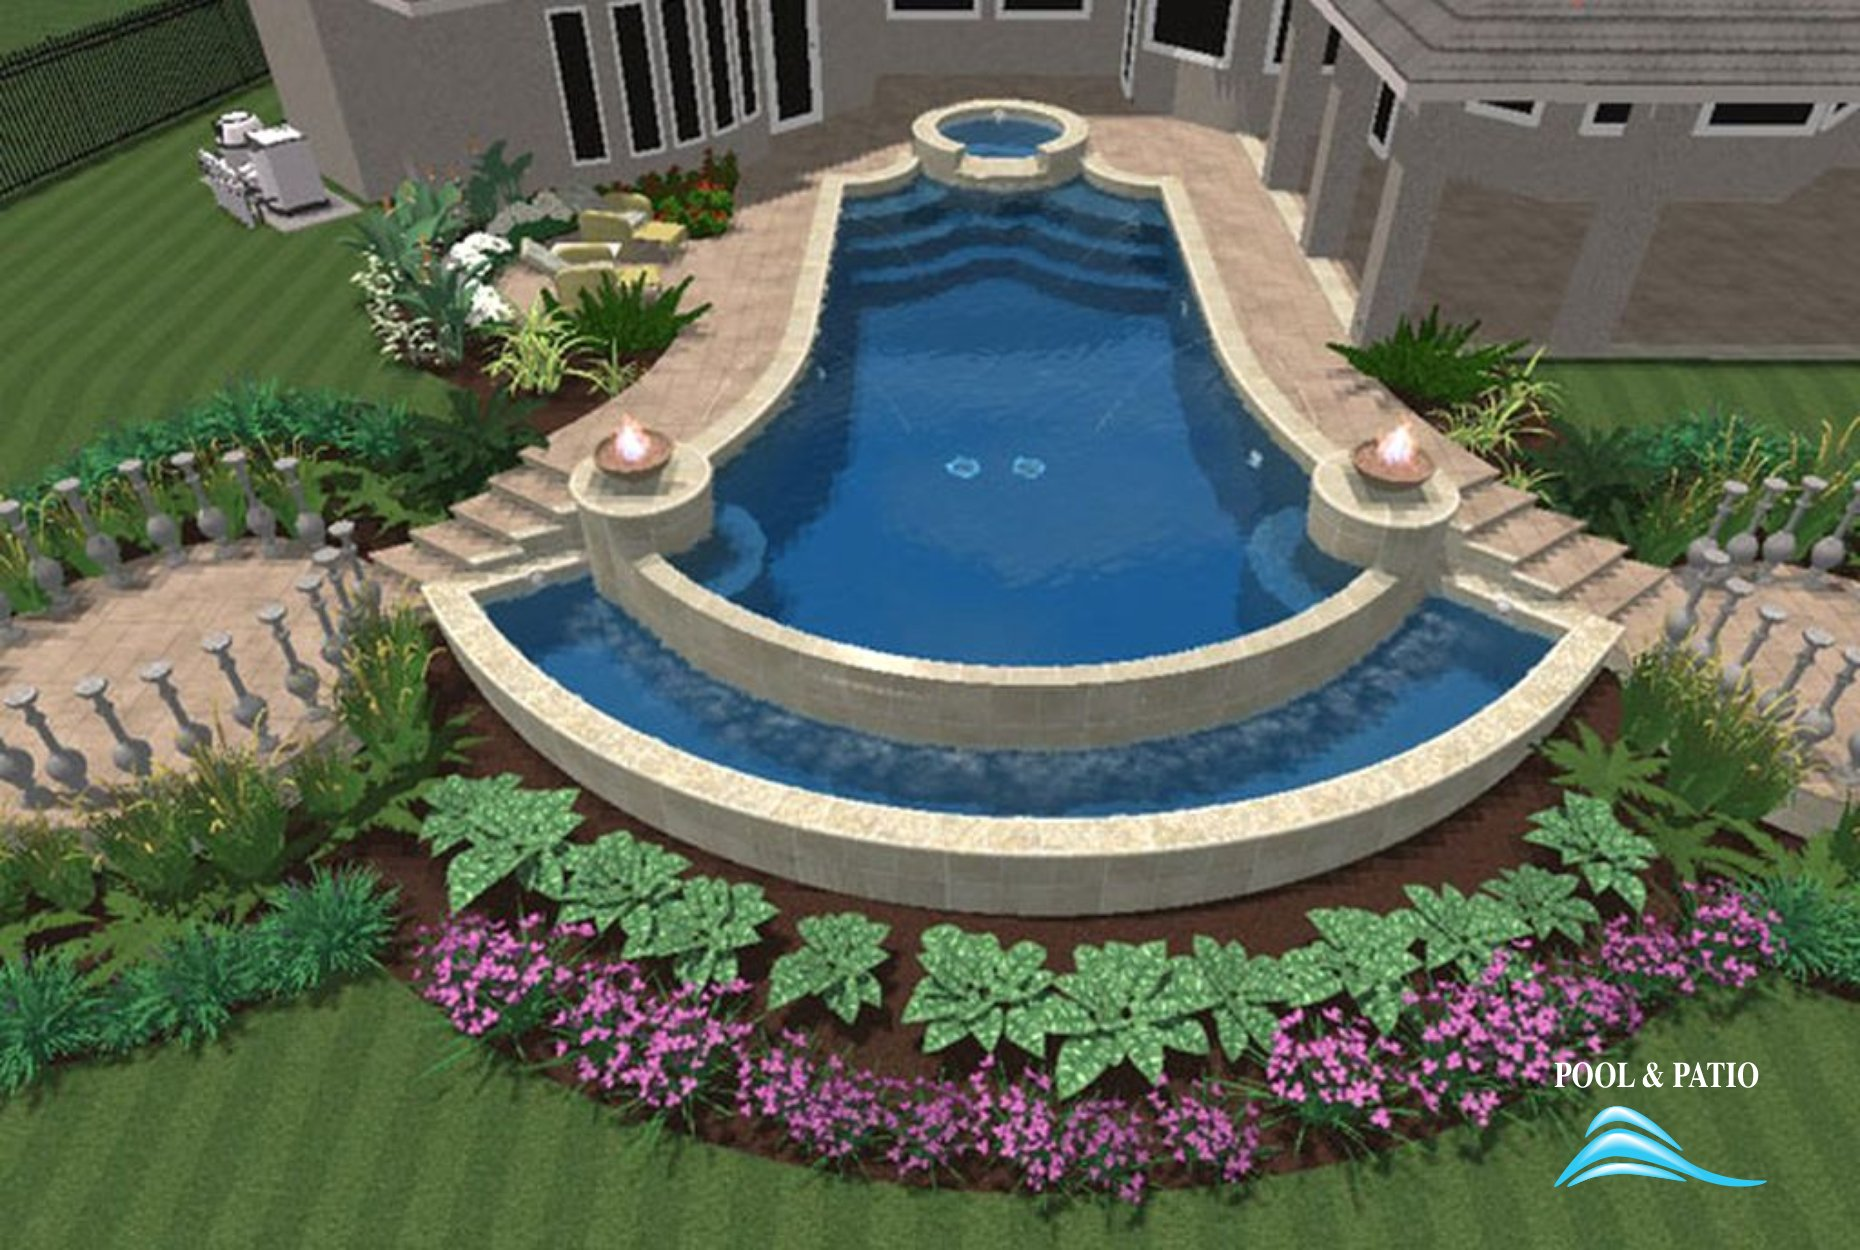 Design Service 004 By Pool And Patio